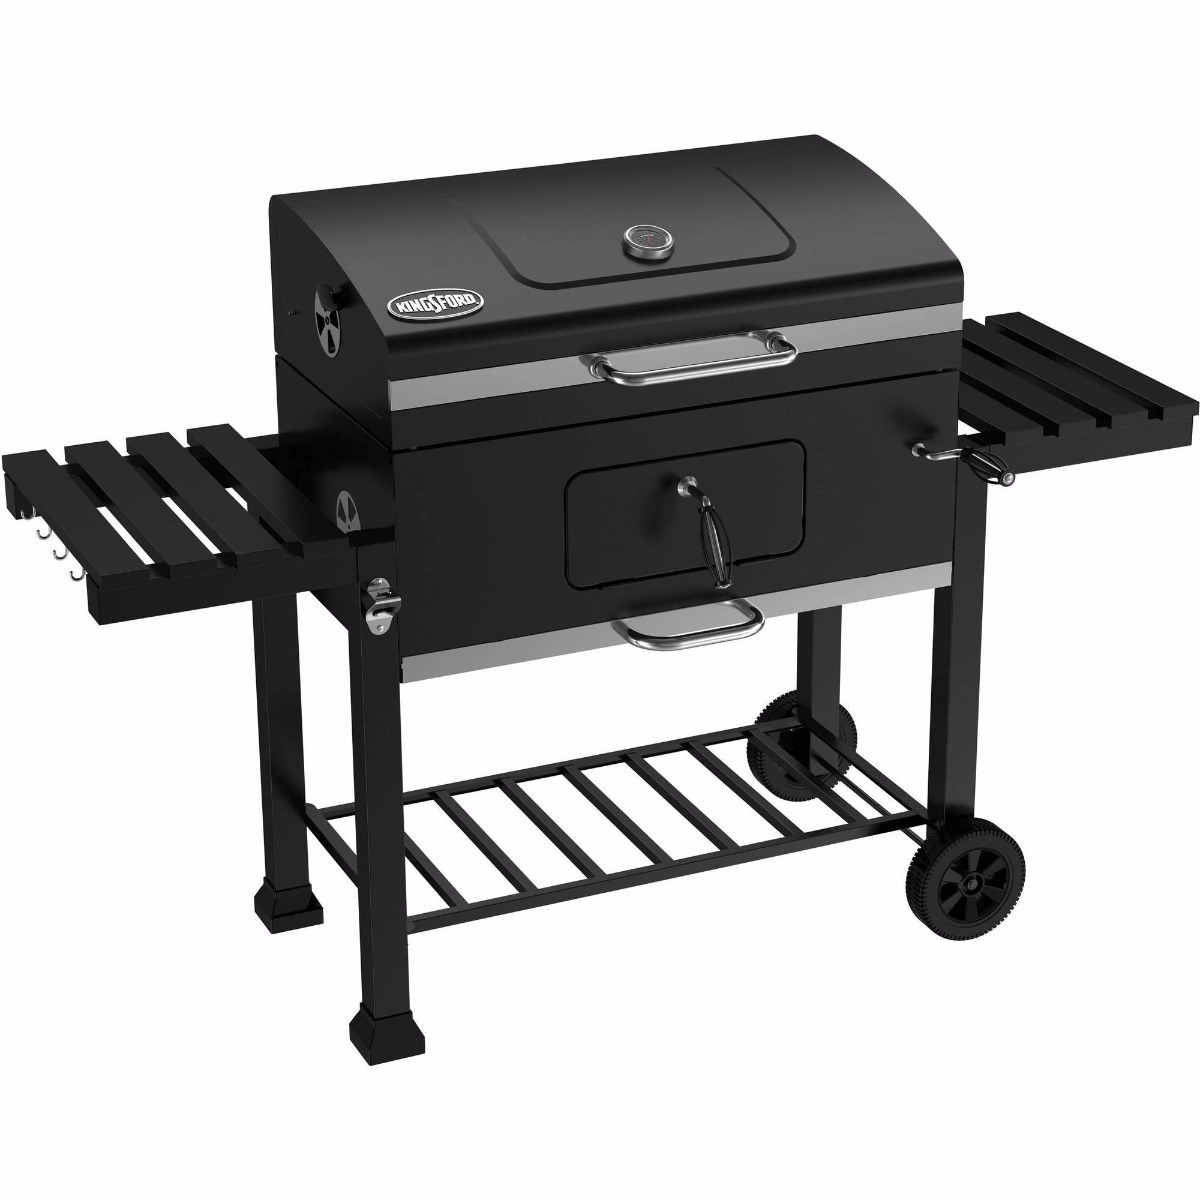 asador de carb n expert grill 32 pulgadas envio gratis msi. Black Bedroom Furniture Sets. Home Design Ideas